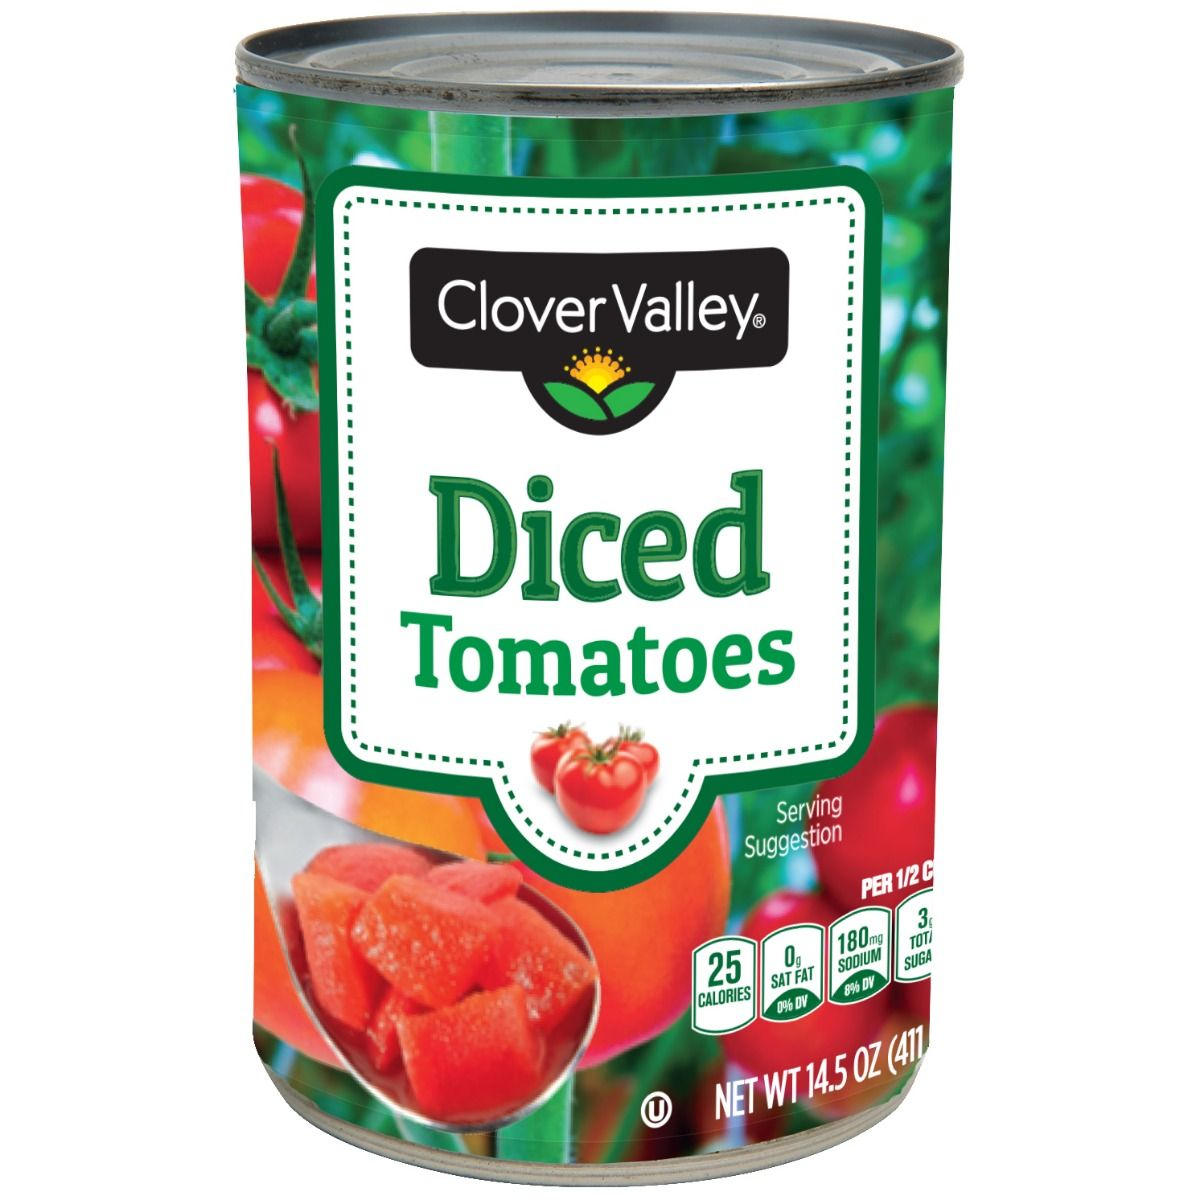 Clover Valley Diced Tomatoes, 14.5 Oz.